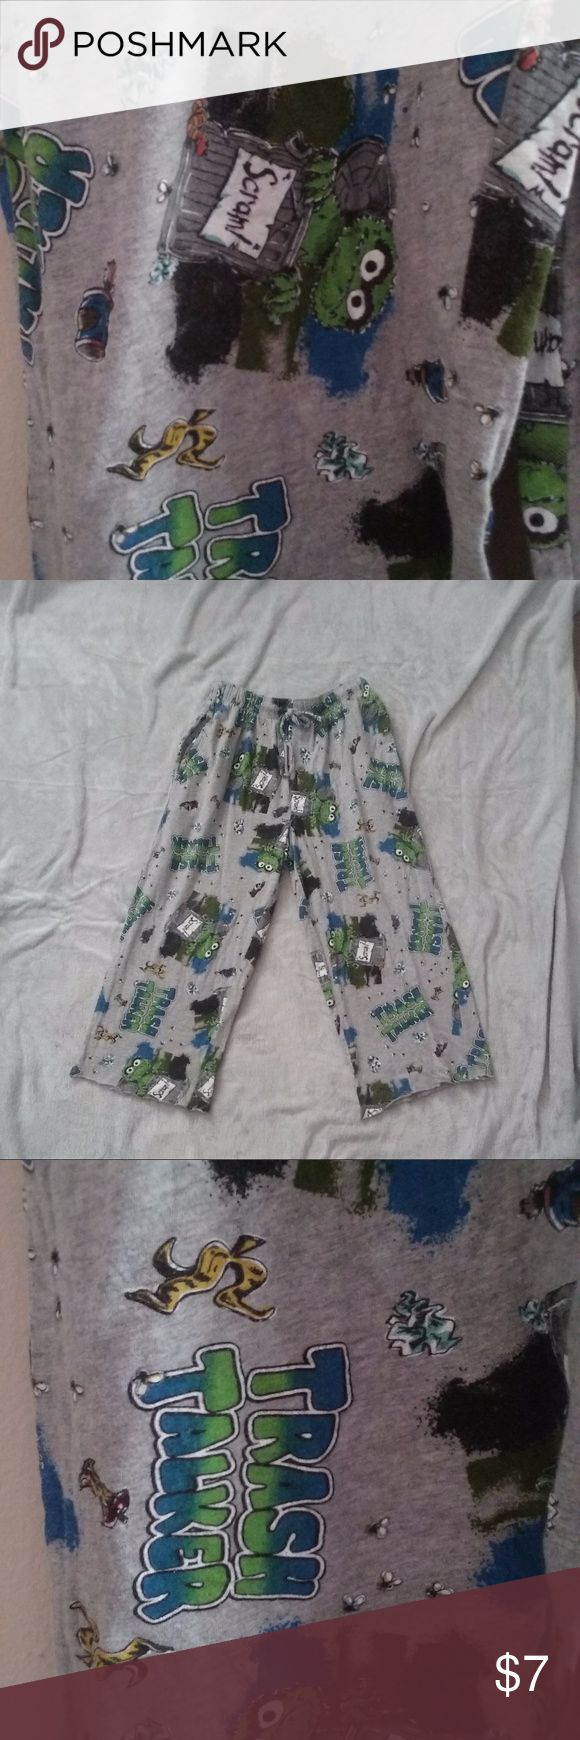 "Oscar Grouch Trash Talker PJ Pants Men Small 28-30 Cute Sesame Street Oscar the Grouch Trash Talker hand cropped sleep/PJ/lounge pants, they are a mens 28-30 small, but could be used by women, measures approximately 18.5"" inseam and 22"" elstic drawstring waist.  Shows normal wash wear. Sesame Street Pants"